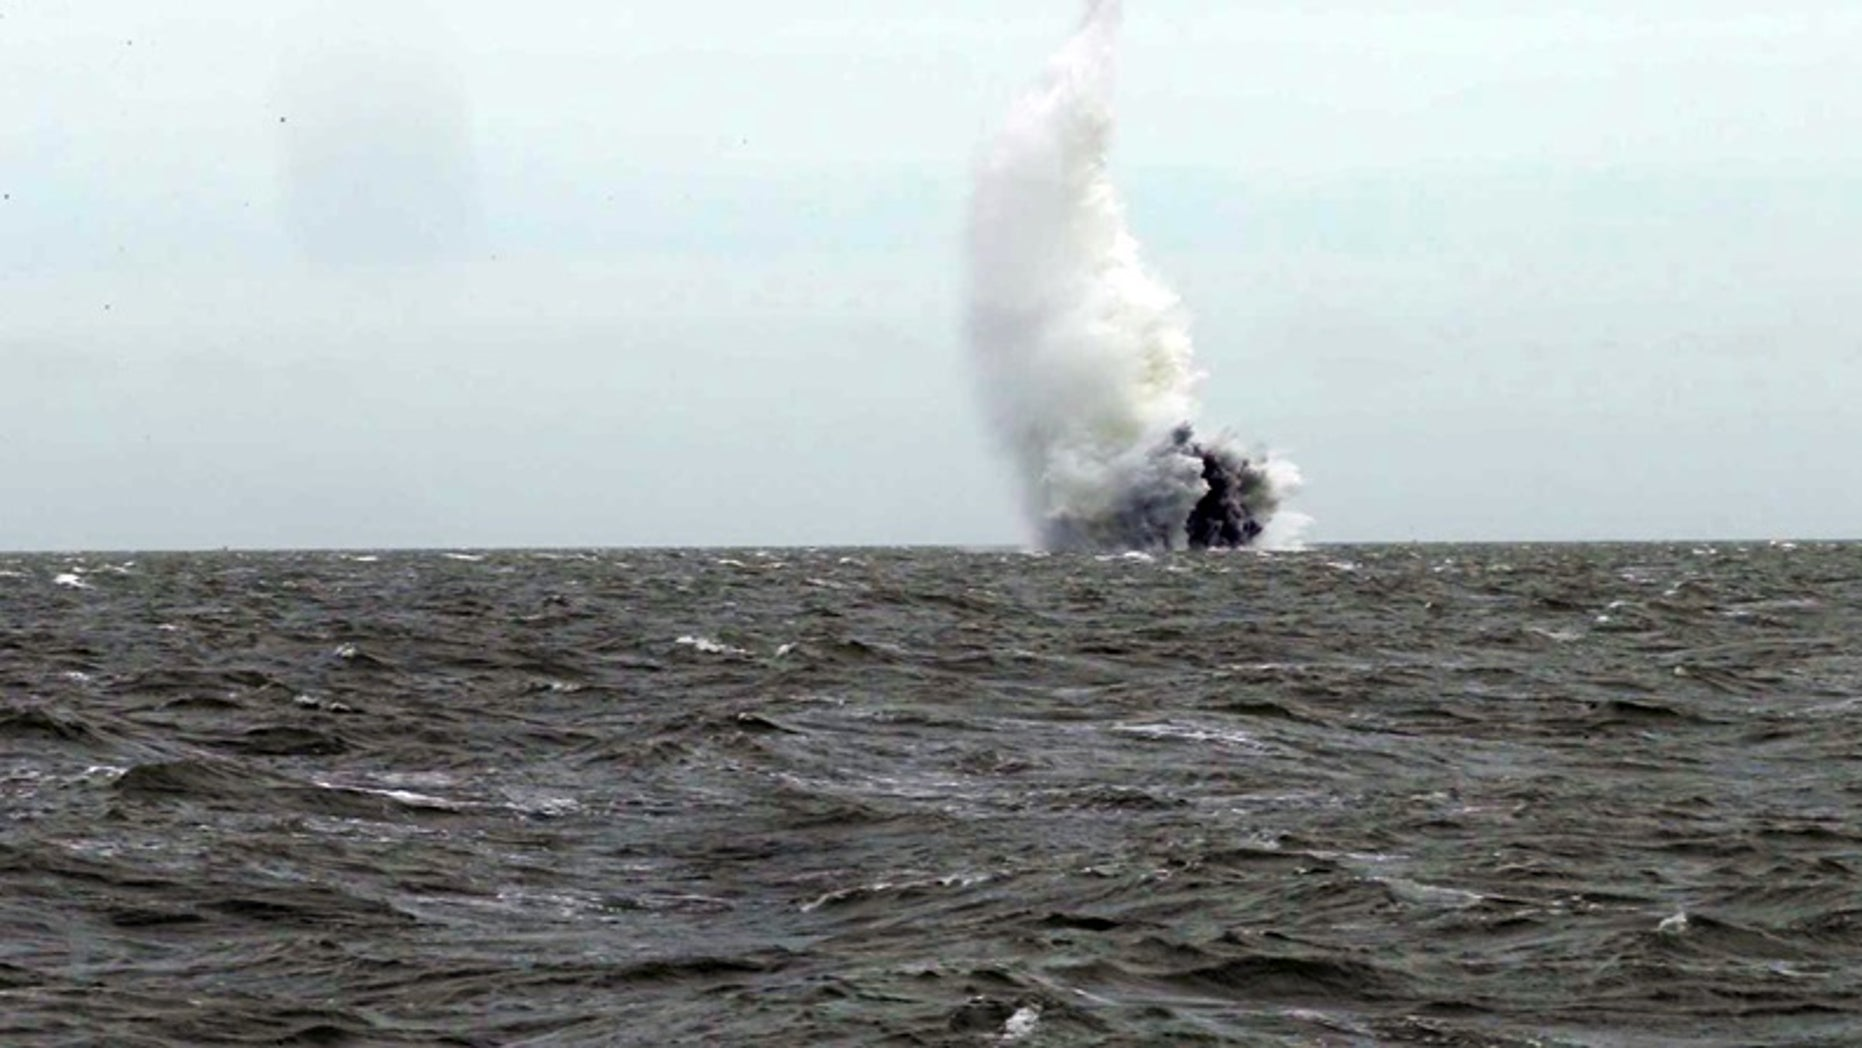 Royal Navy bomb disposal experts have detonated the World War II bomb that was recently discovered in the River Thames (Royal Navy/Ministry of Defence)